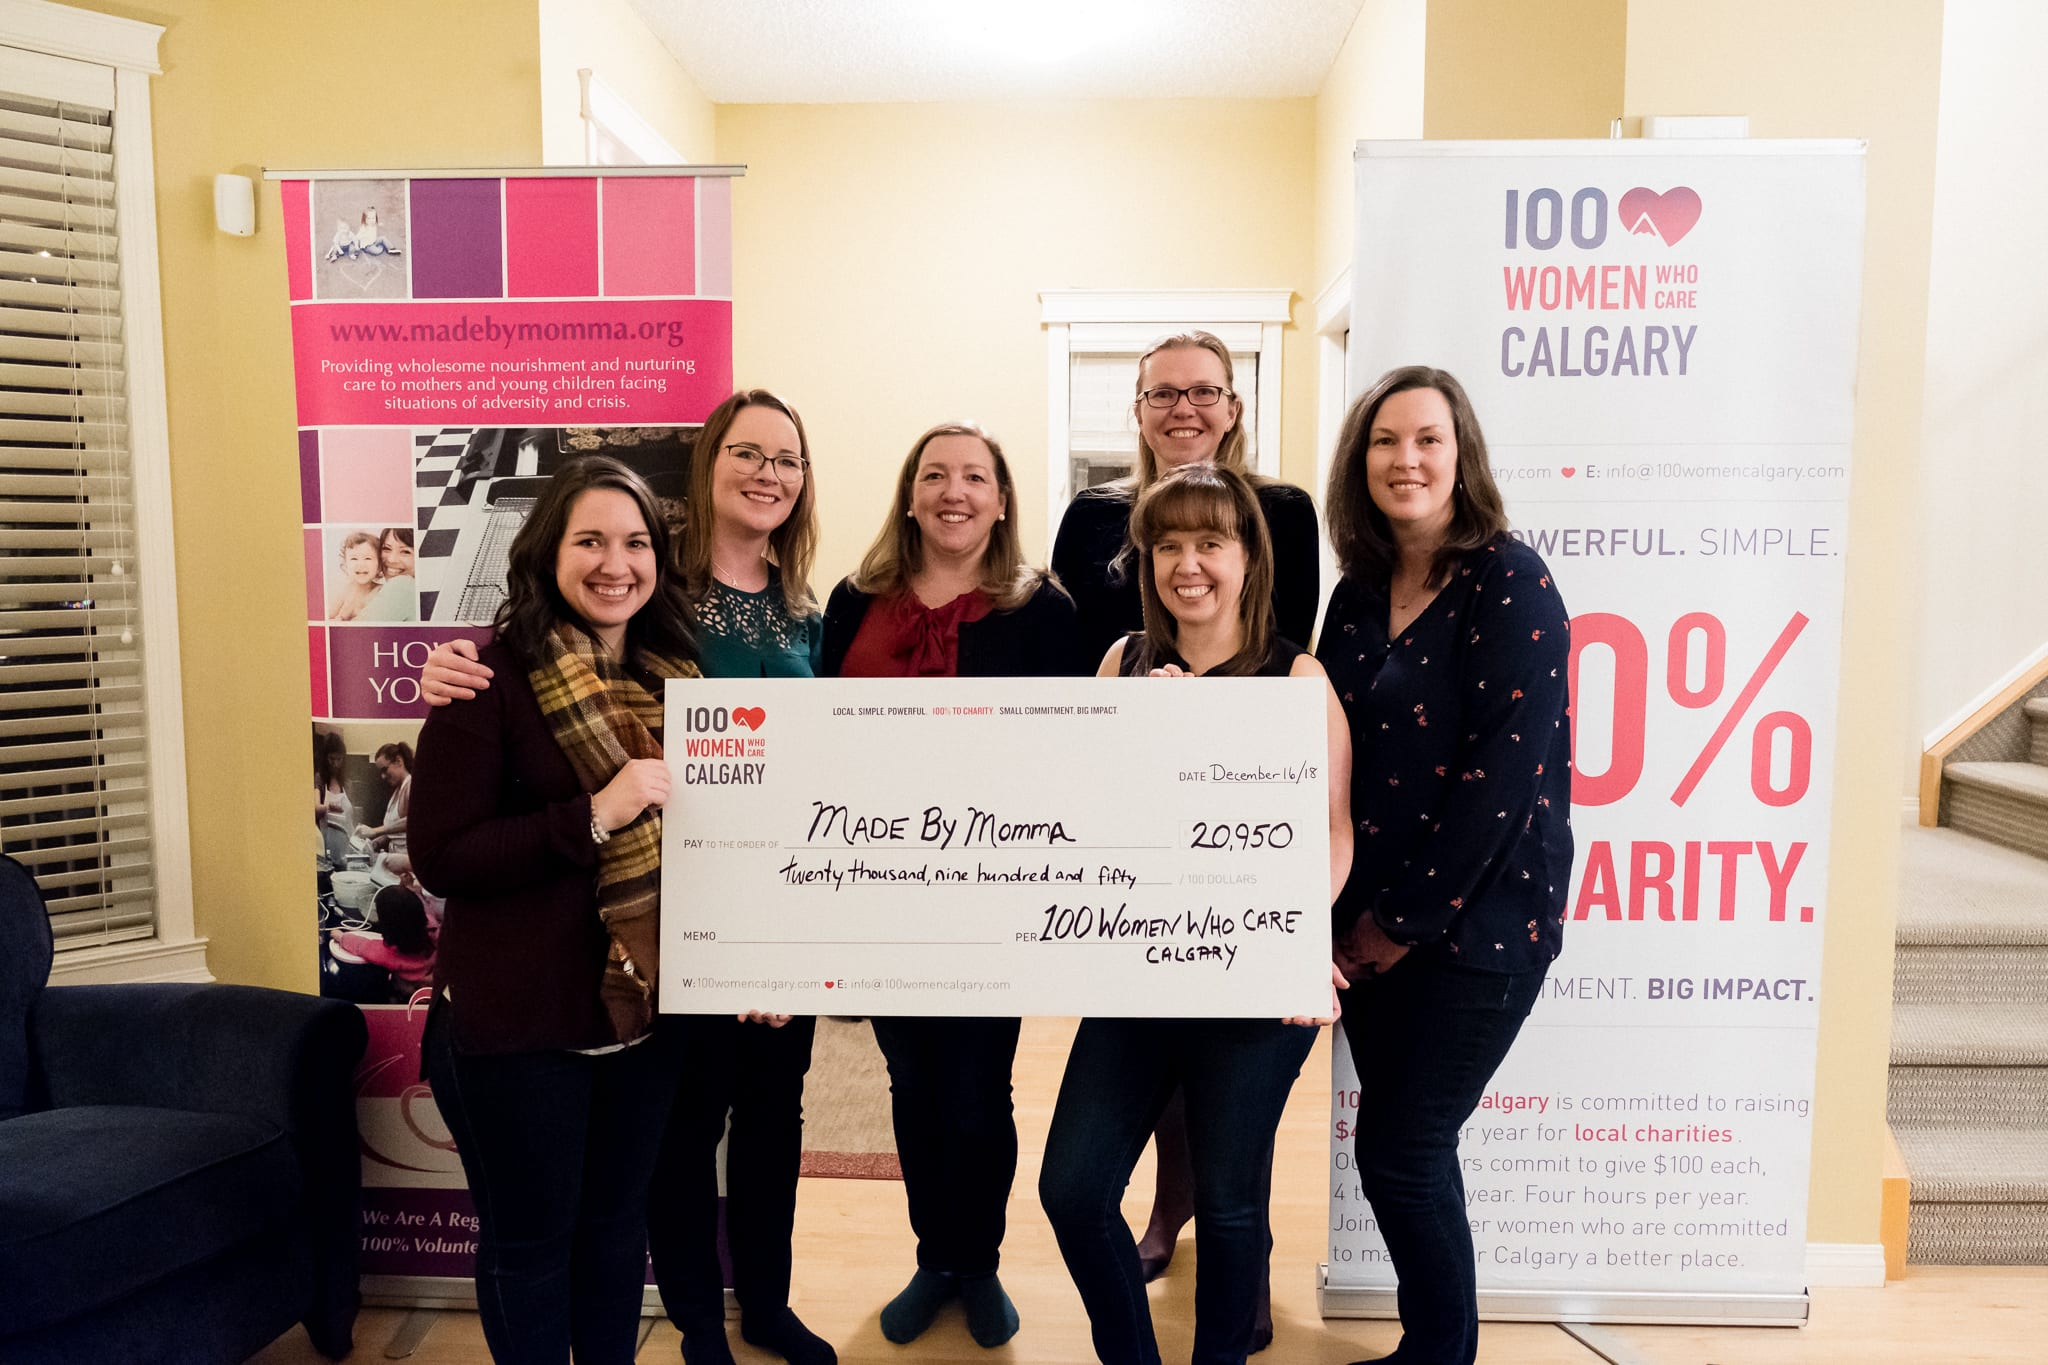 Cheque presented to Made by Momma by 100 Women Who Care Calgary